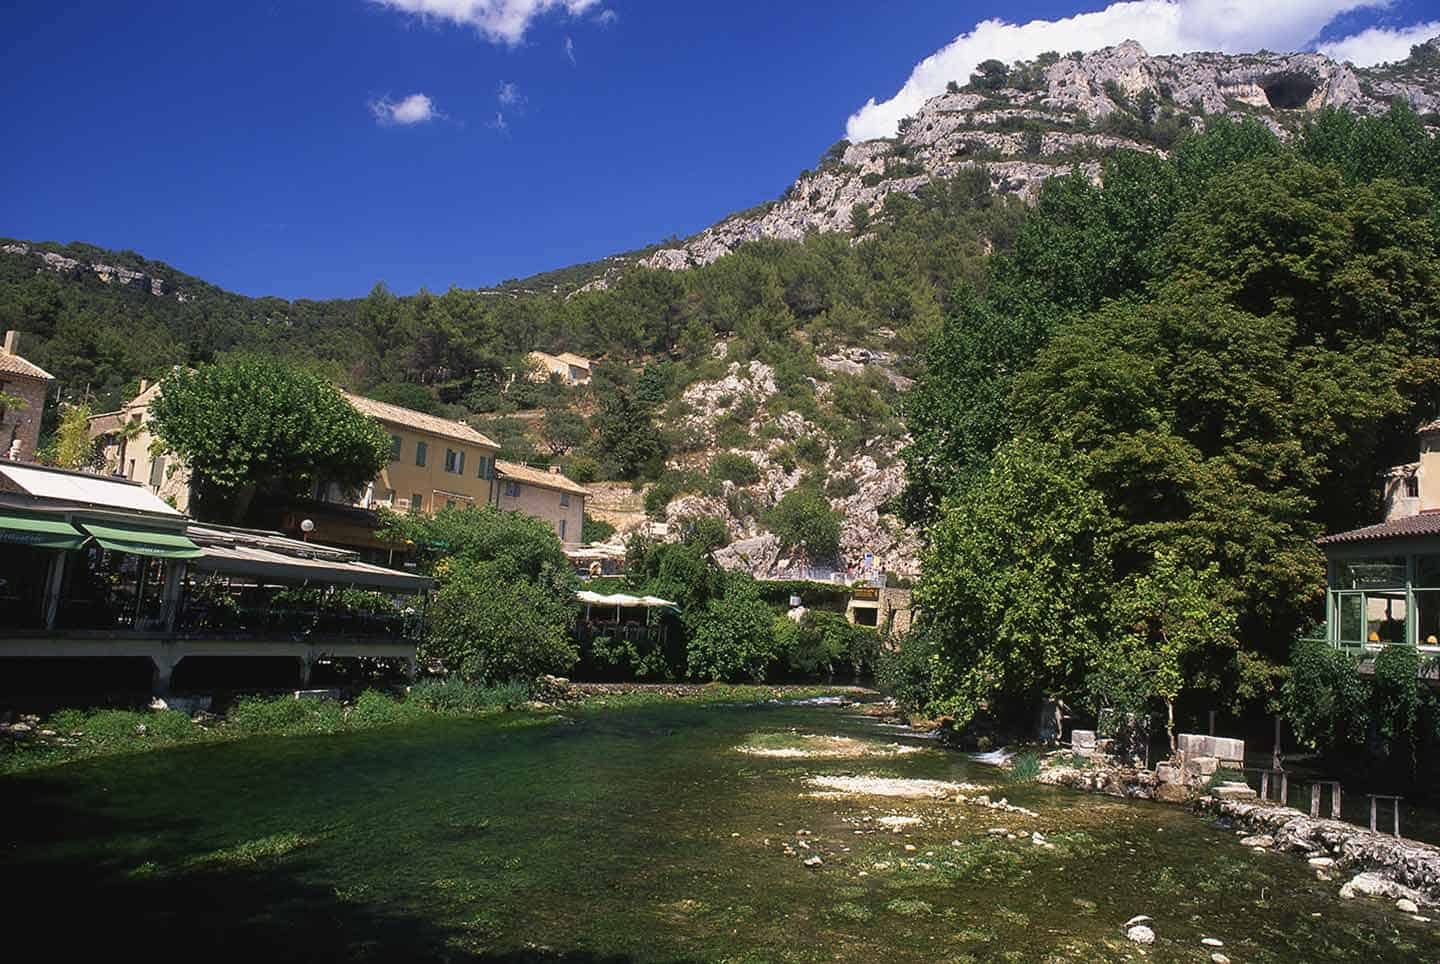 Image of the river Sorgue at Fontaine-de-Vaucluse, Provence